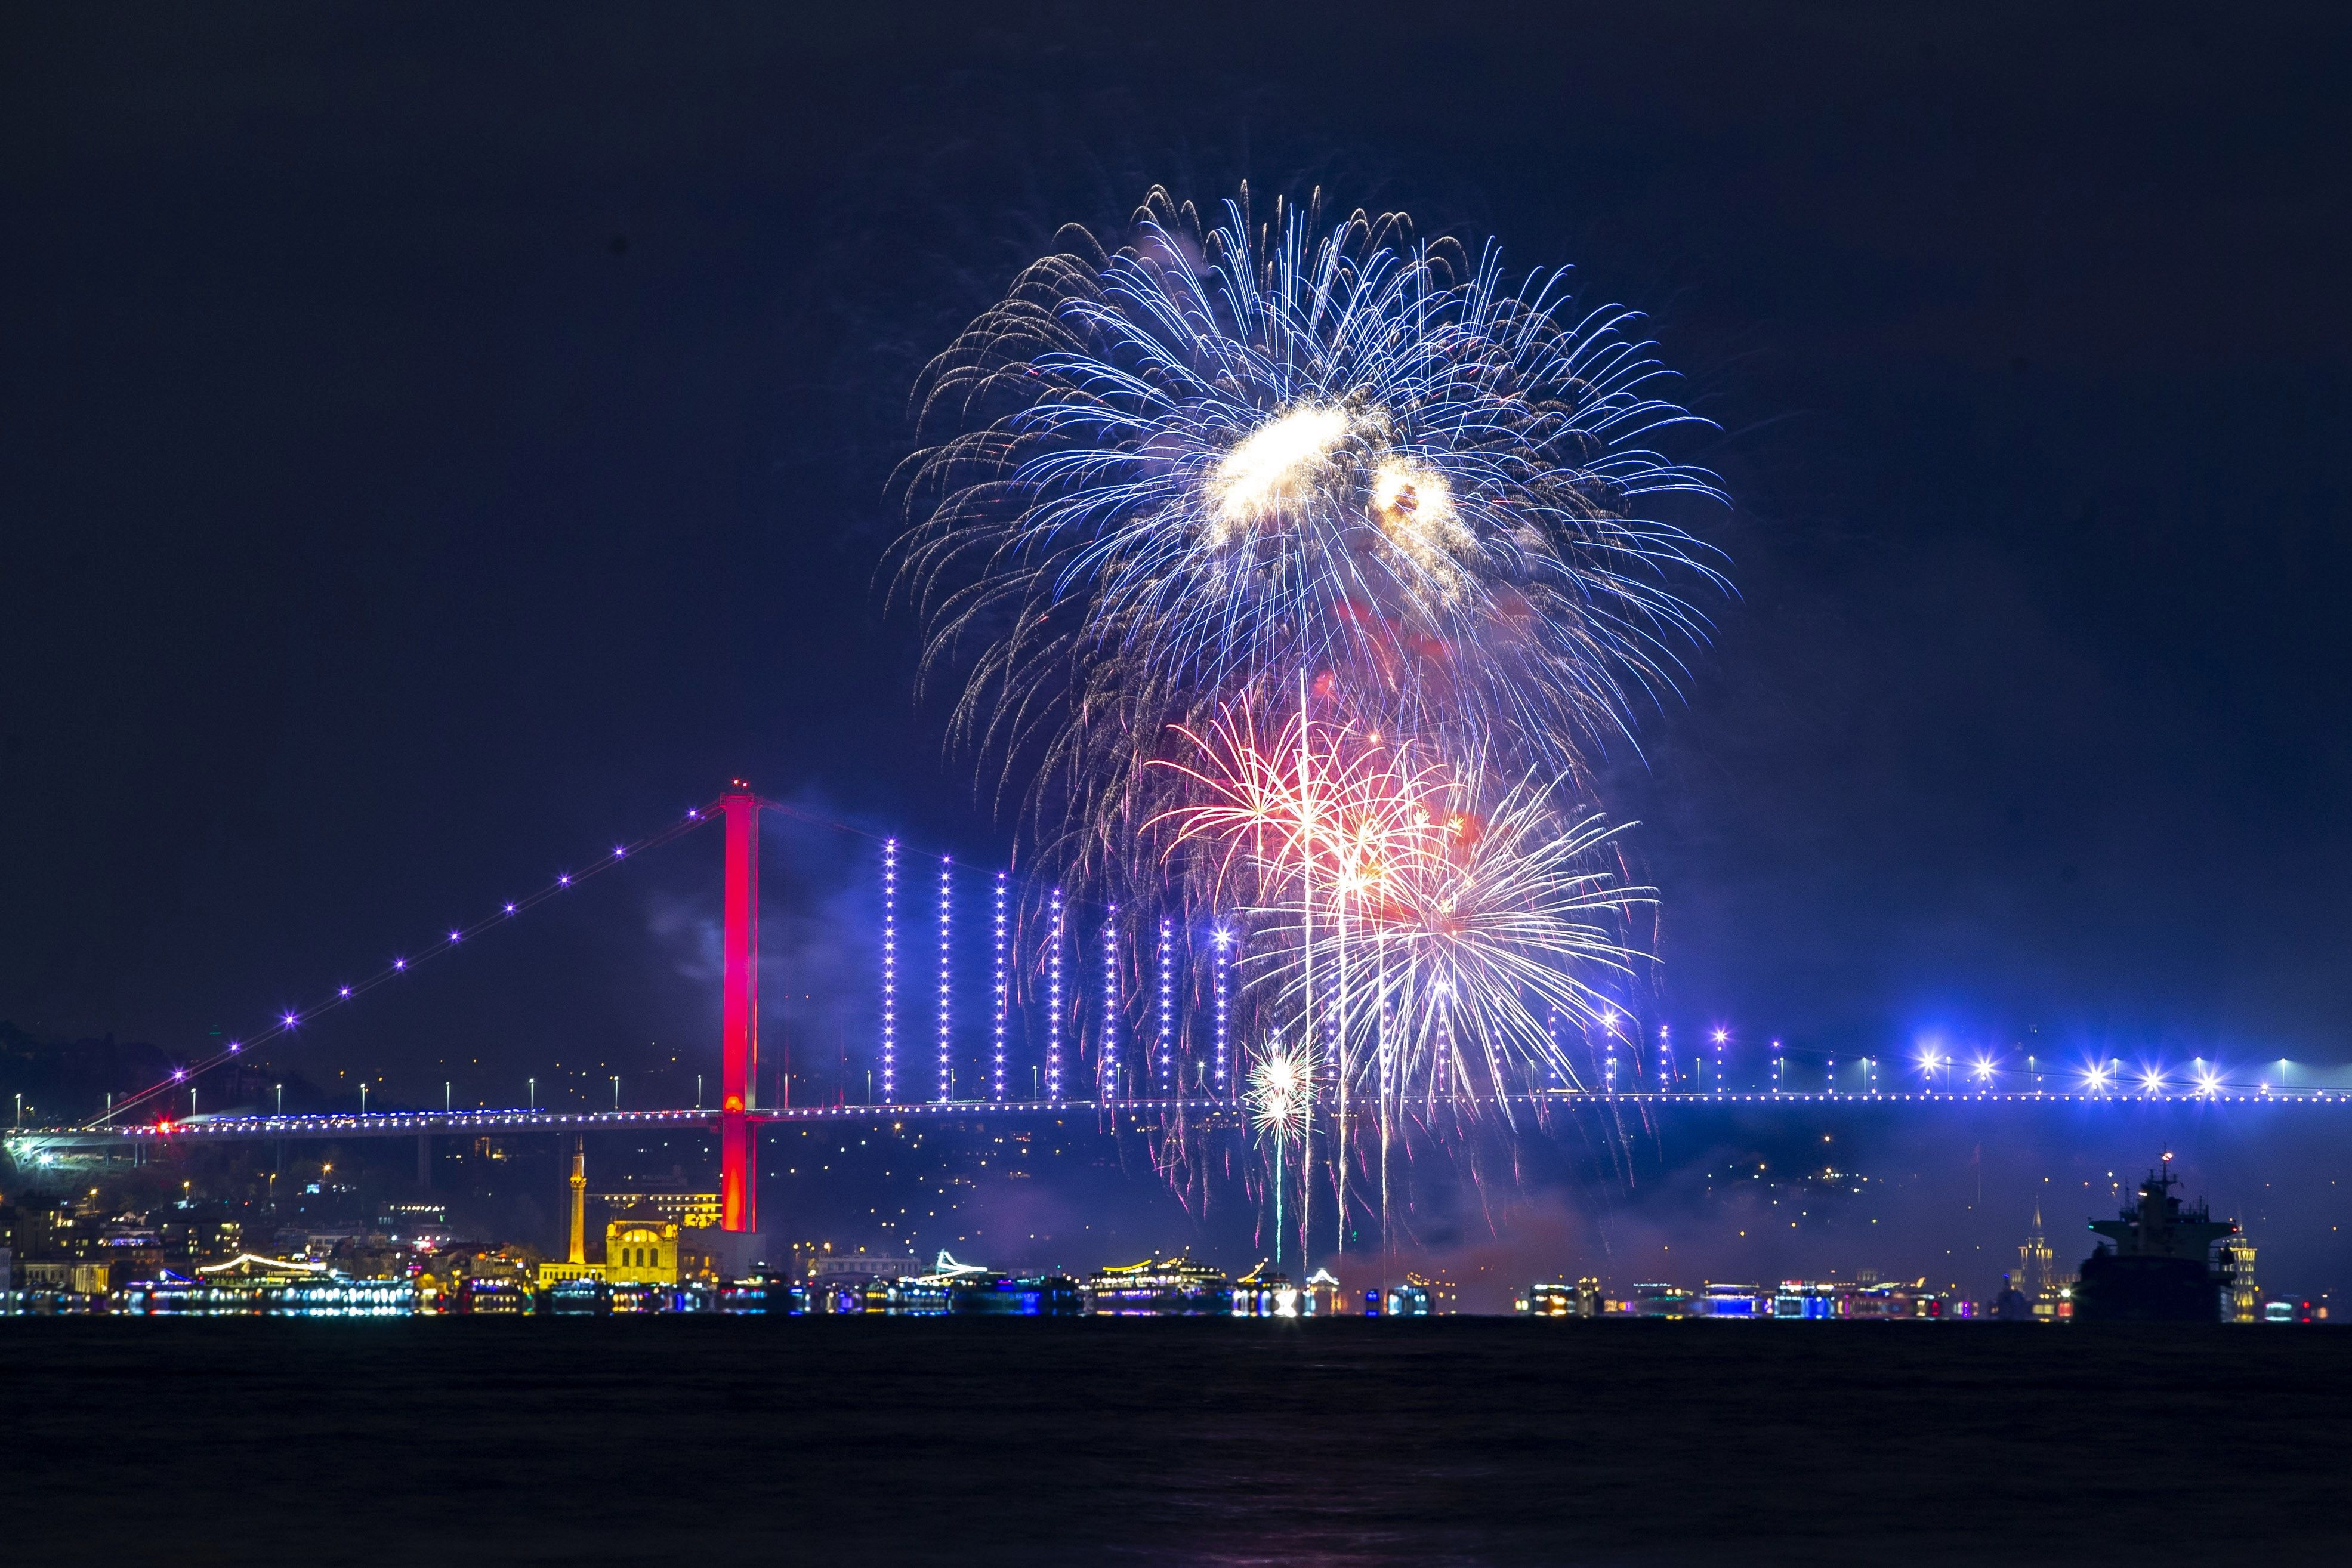 Pictures From 2020 New Year's Eve Celebrations Across the